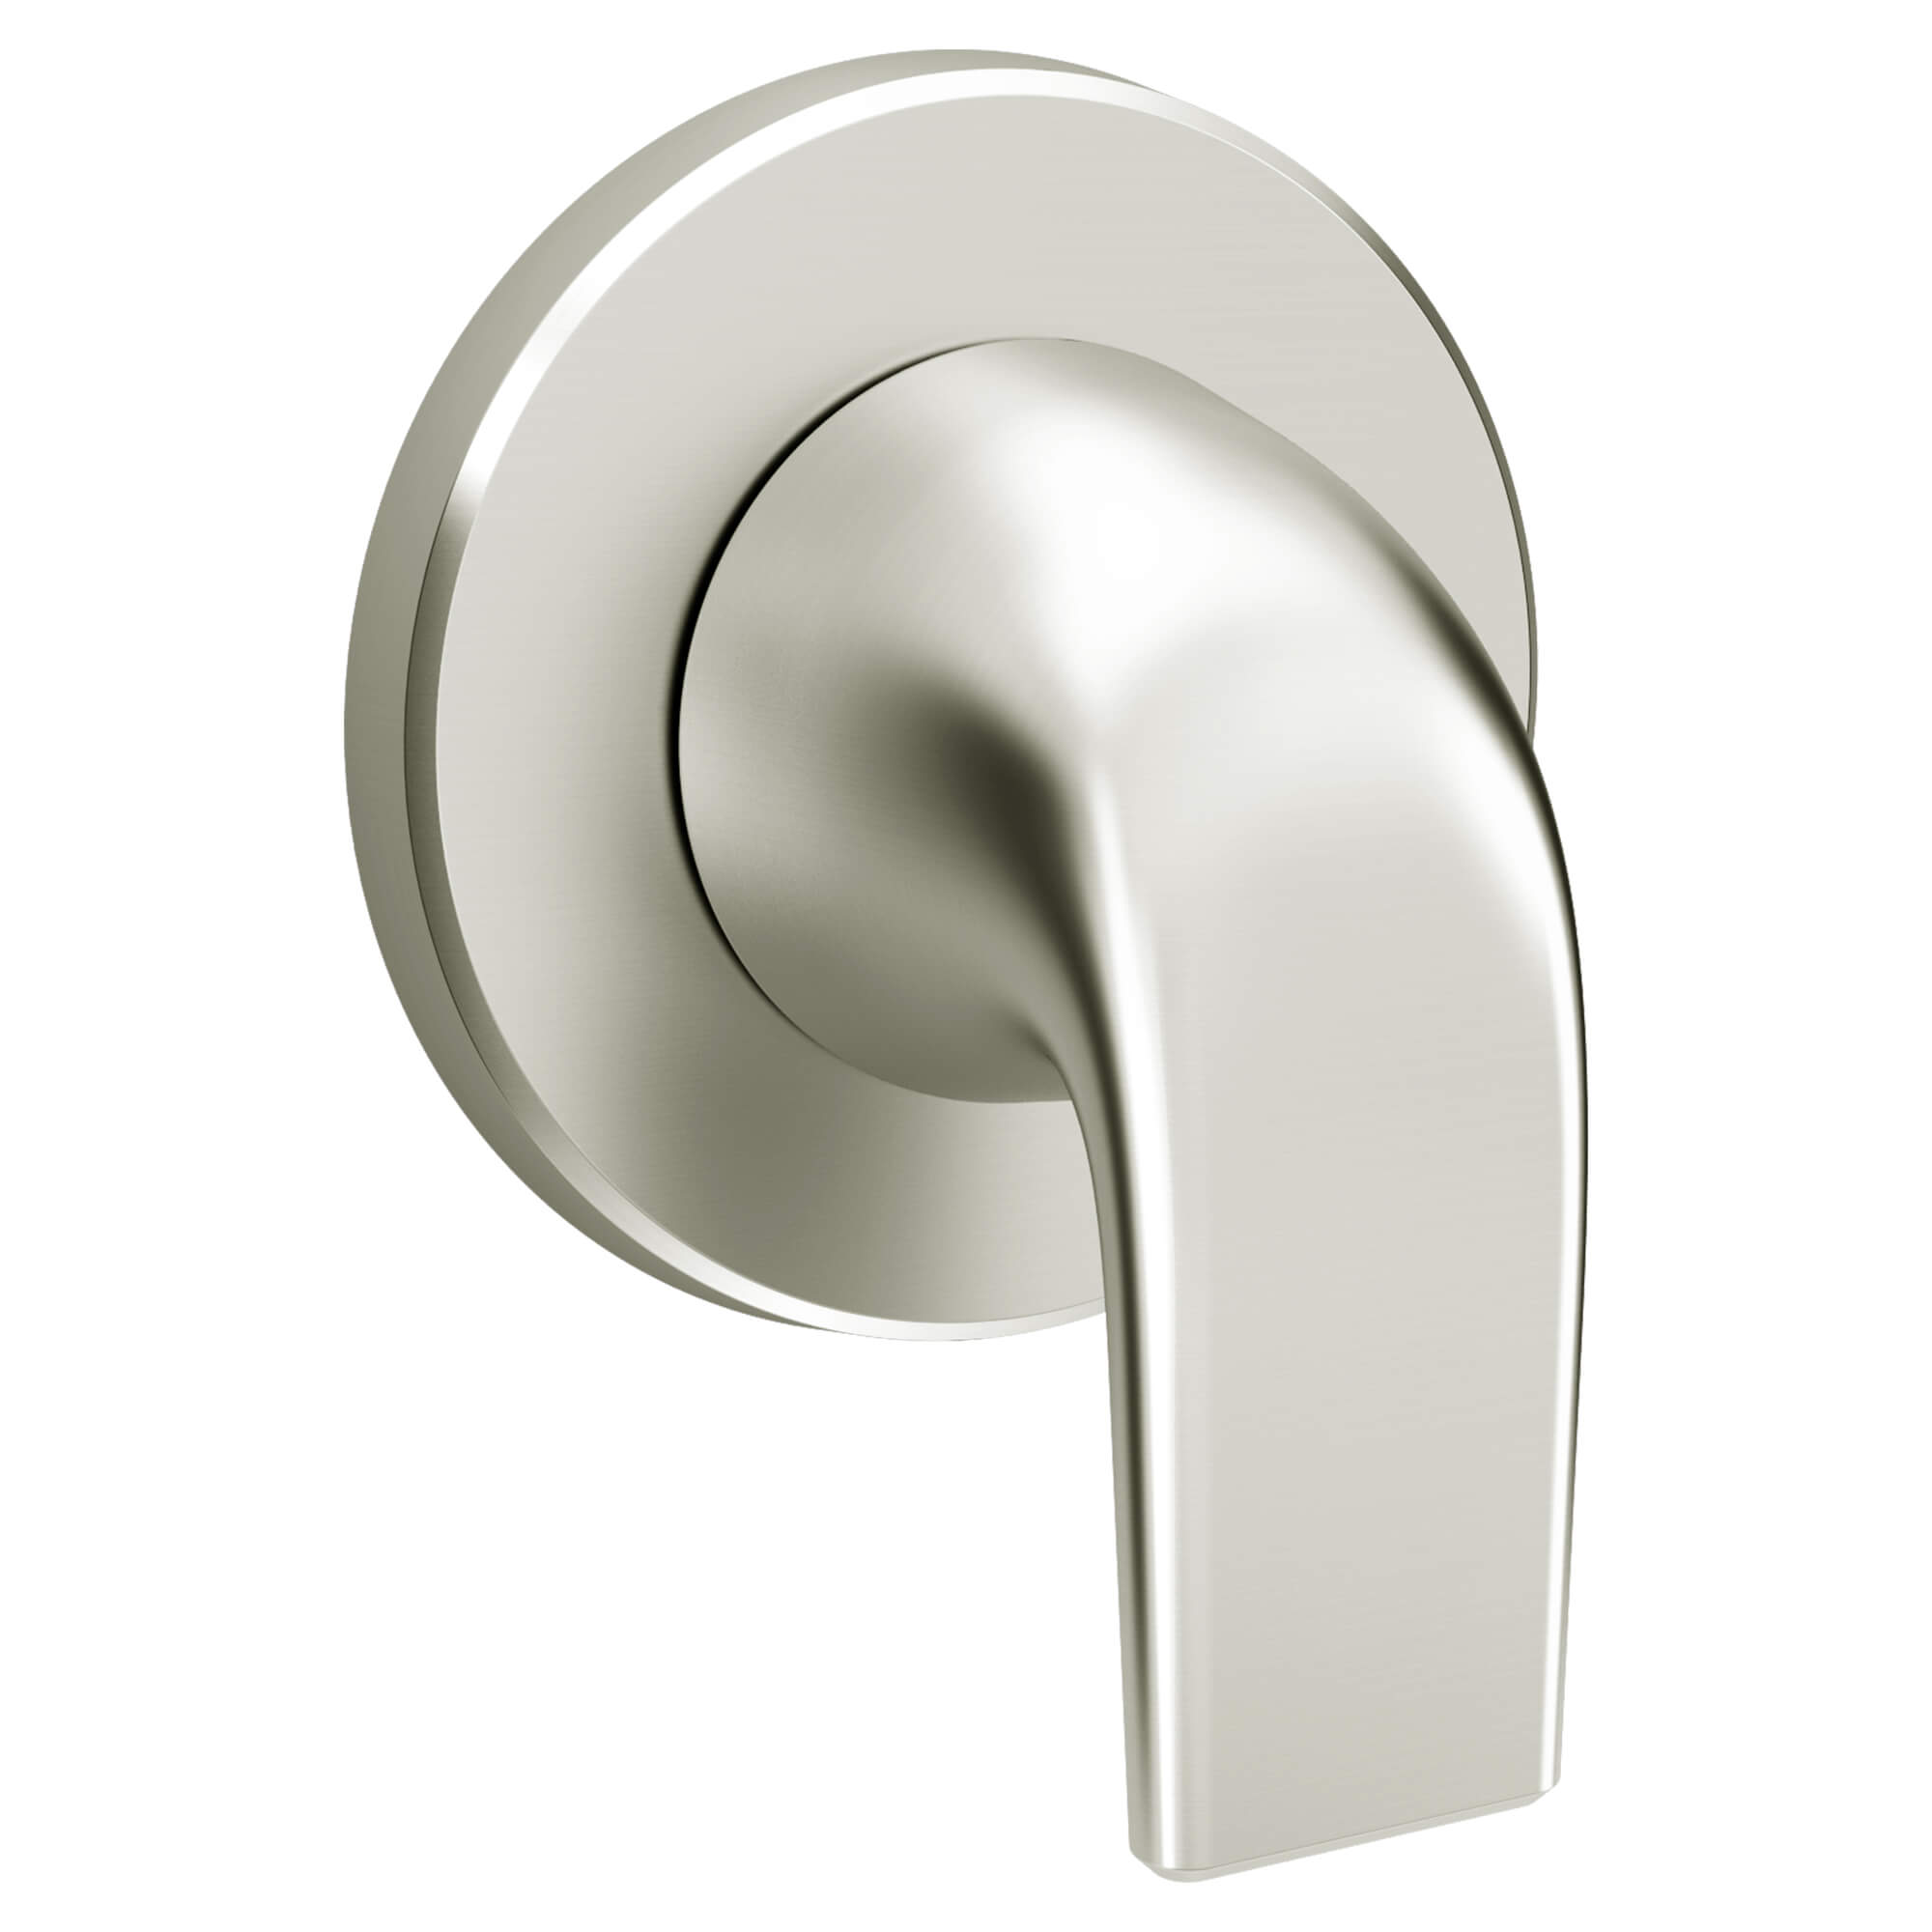 DXV Modulus 1/2-inch or 3/4-inch Wall Valve Trim (Edit)